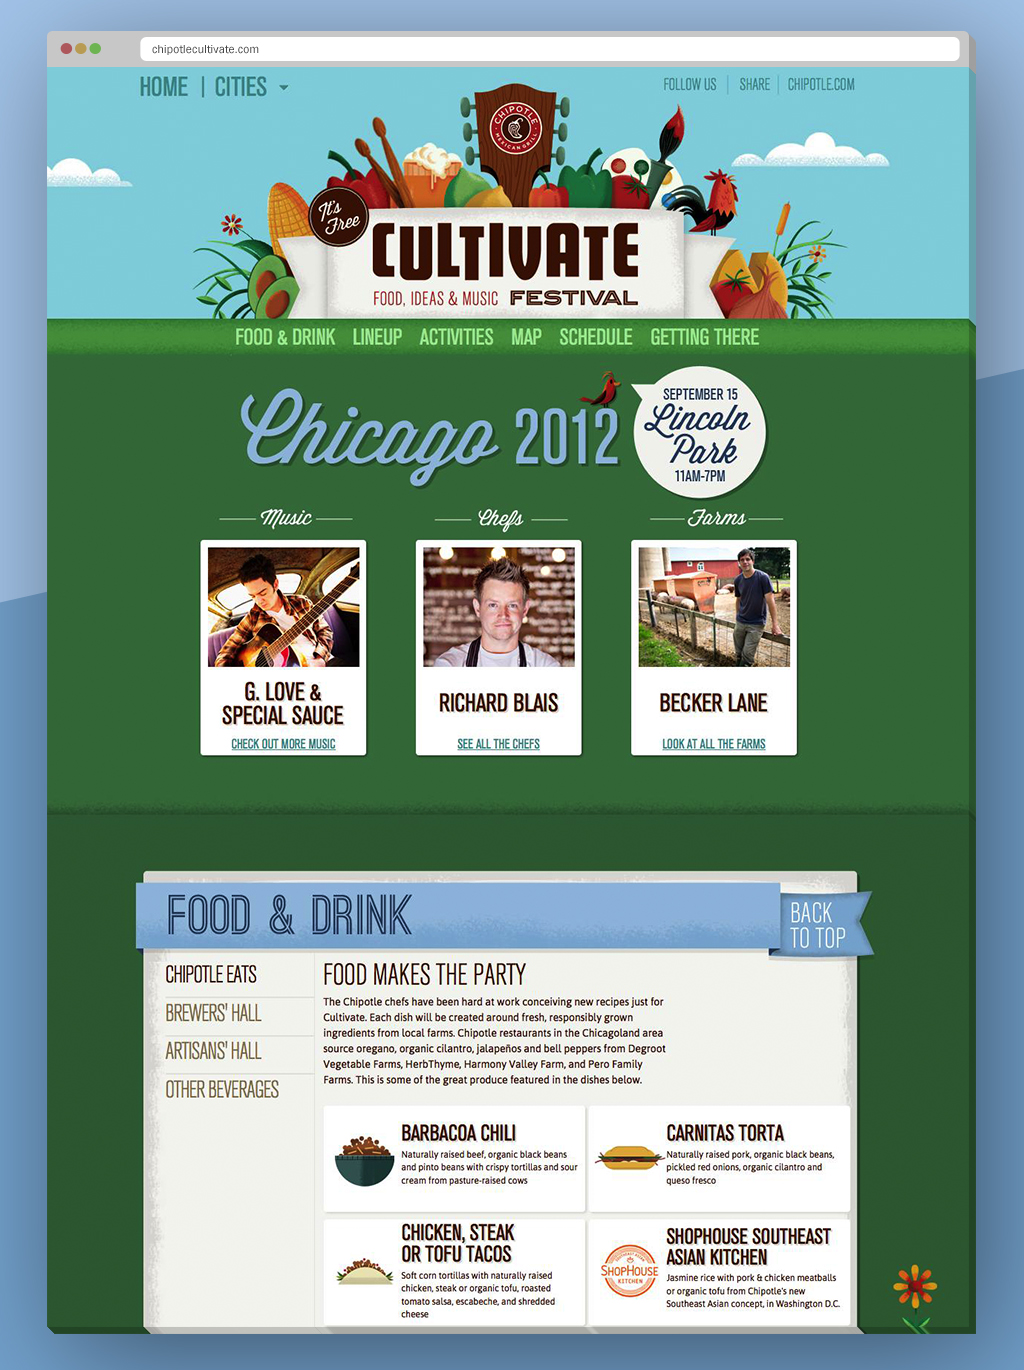 Chipotle_Cultivate_website2